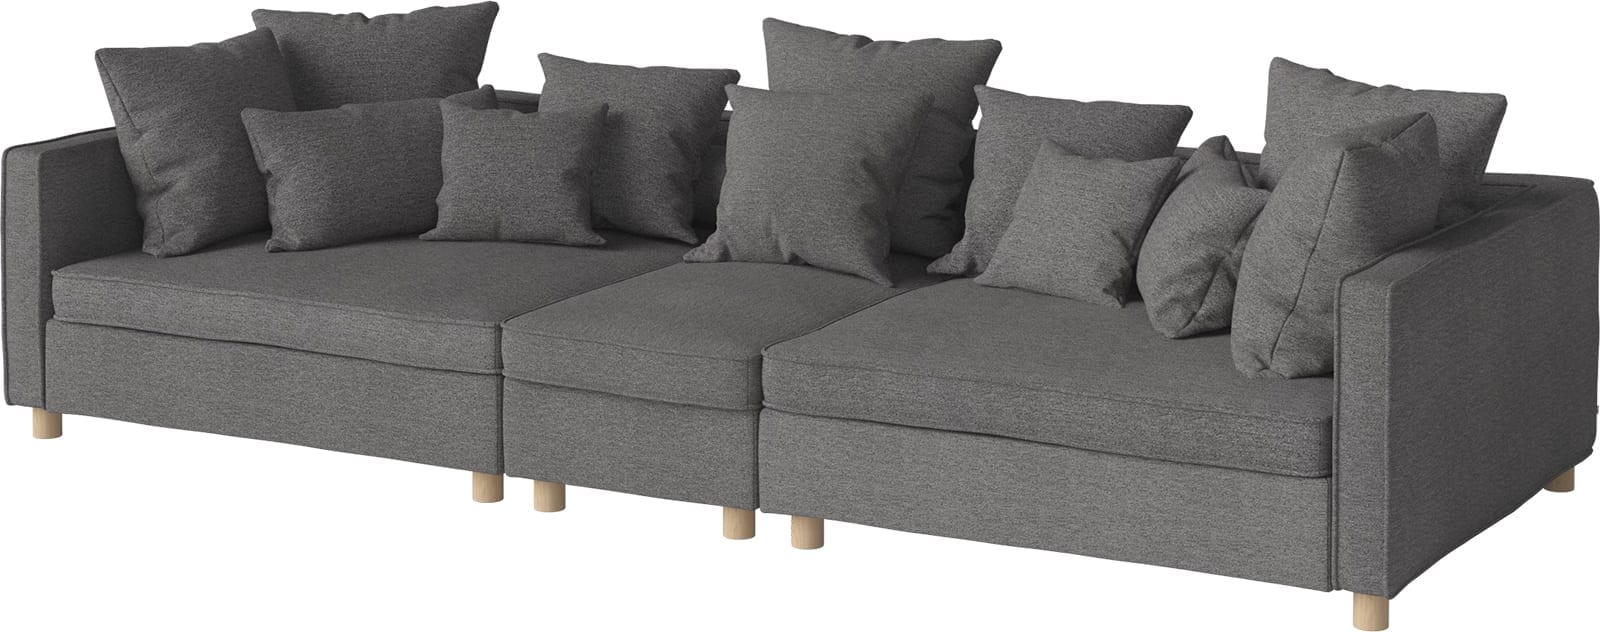 Mr 3 Units Sofa With Back Unit Small